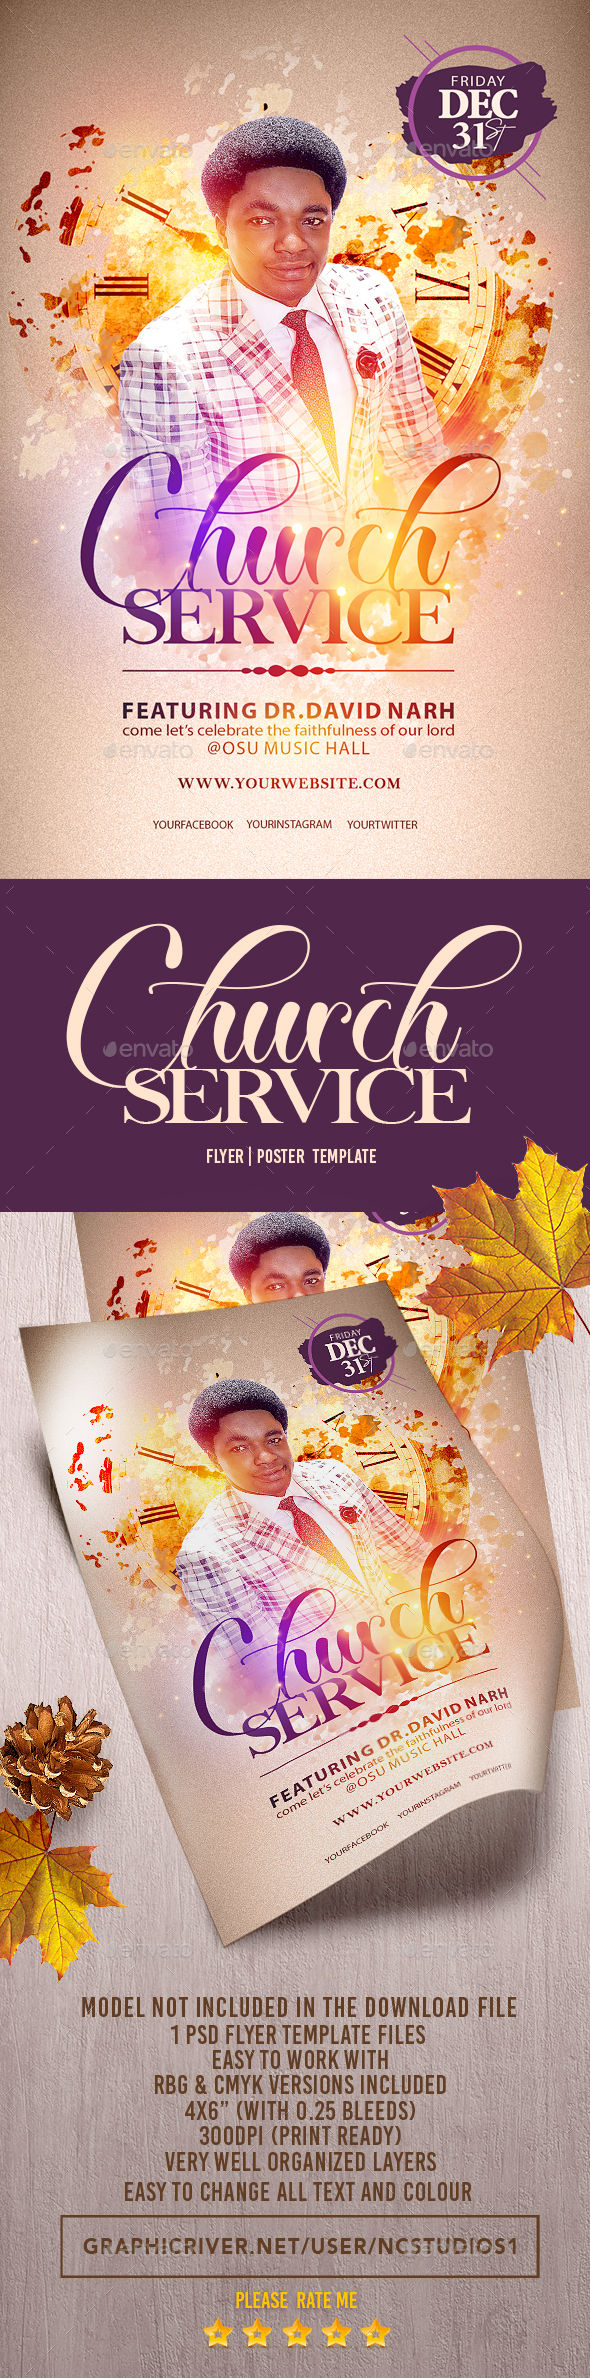 Church Service Flyer Template - Events Flyers